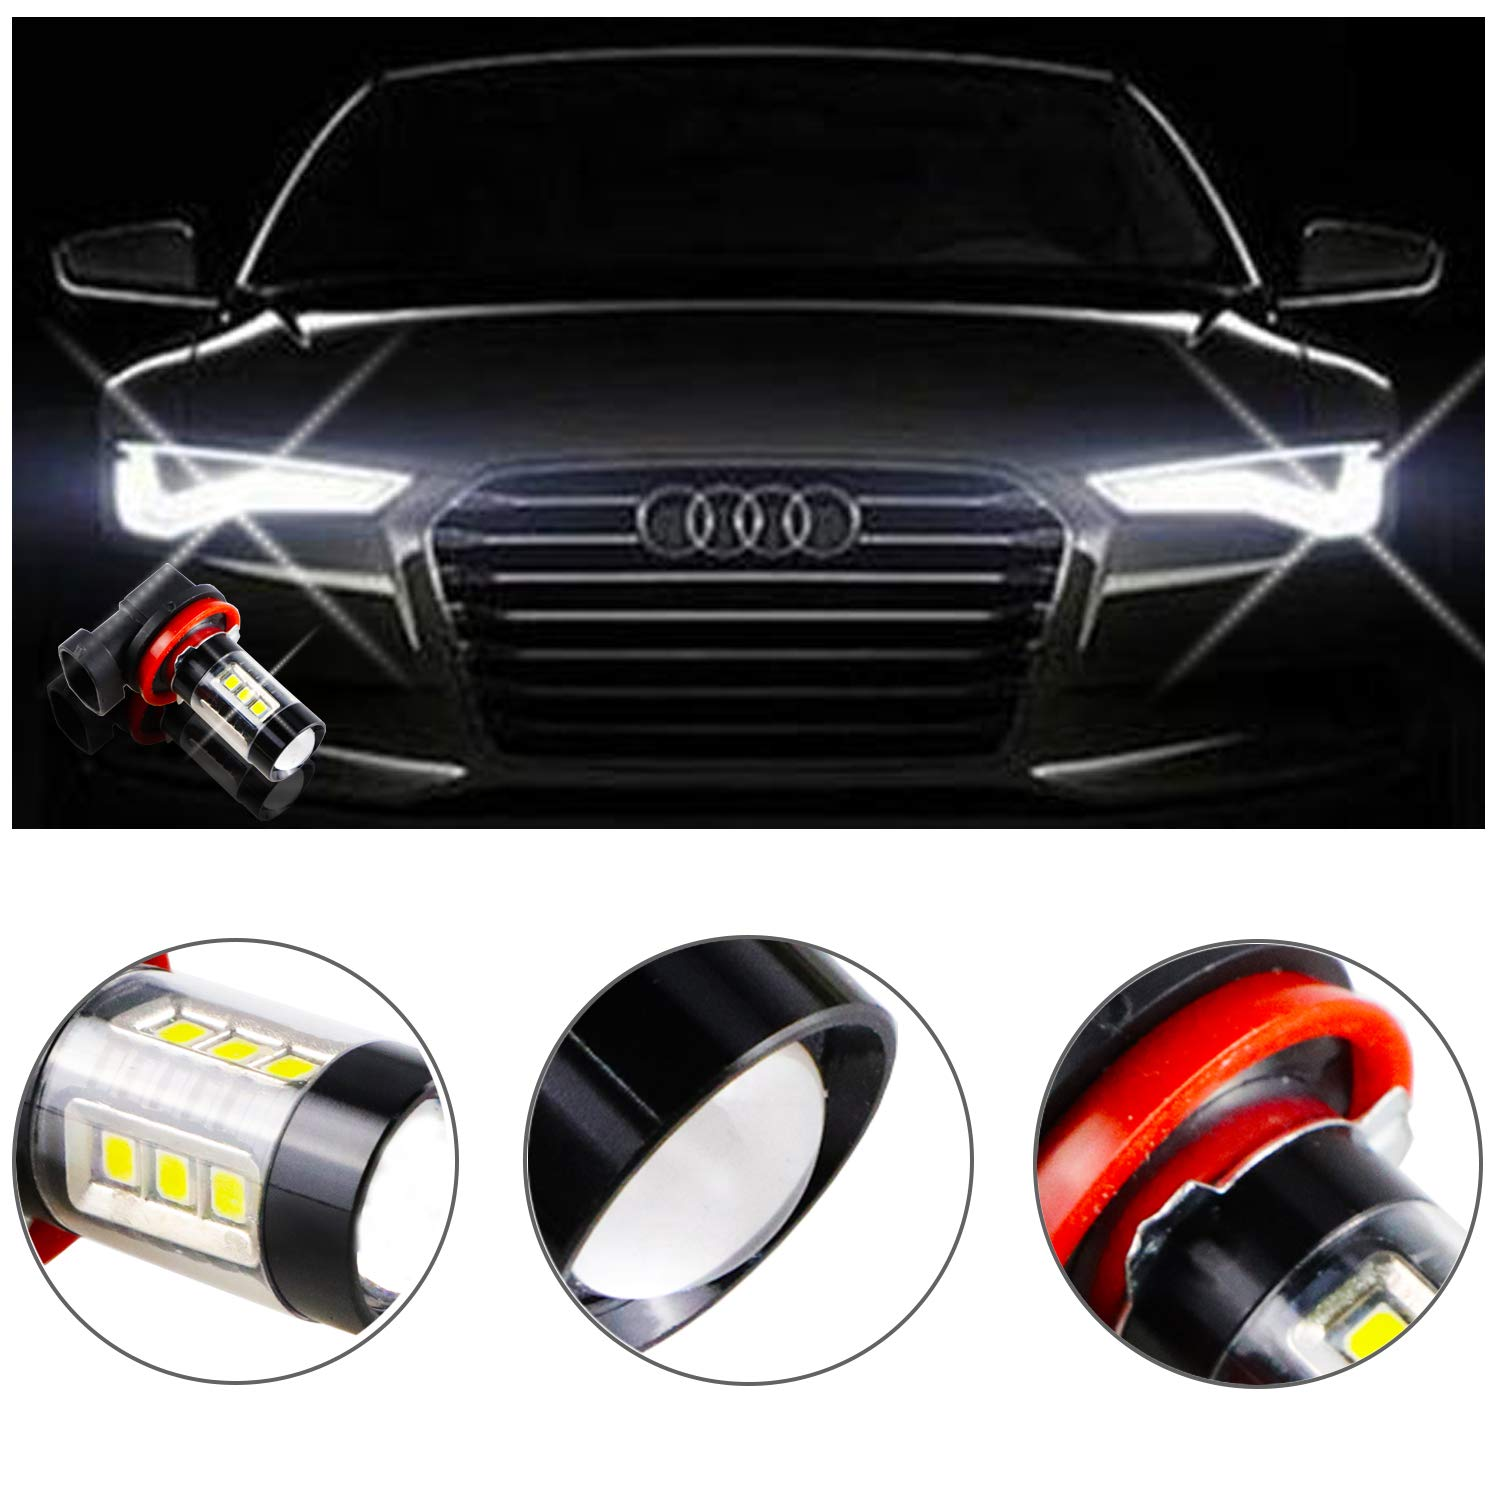 H10 9145 Fog Light Bulbs LED 50W Ultra Extremely Bright 6000K 10 SMD White Xenon Driving Light Bulbs Lamps Pack of 2